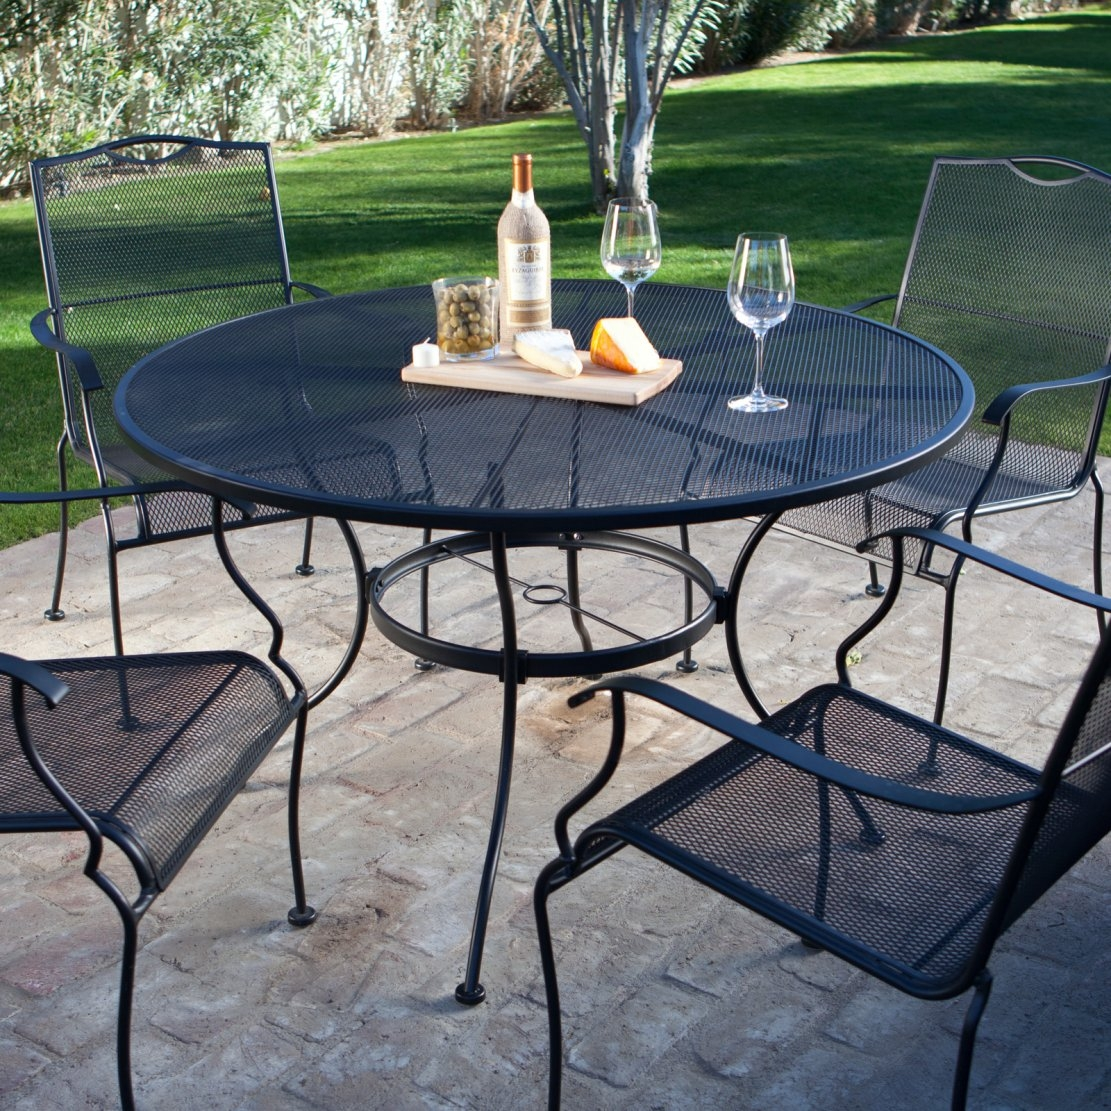 porch table and chair set bad back chairs for home 5 piece wrought iron patio furniture dining seats 4